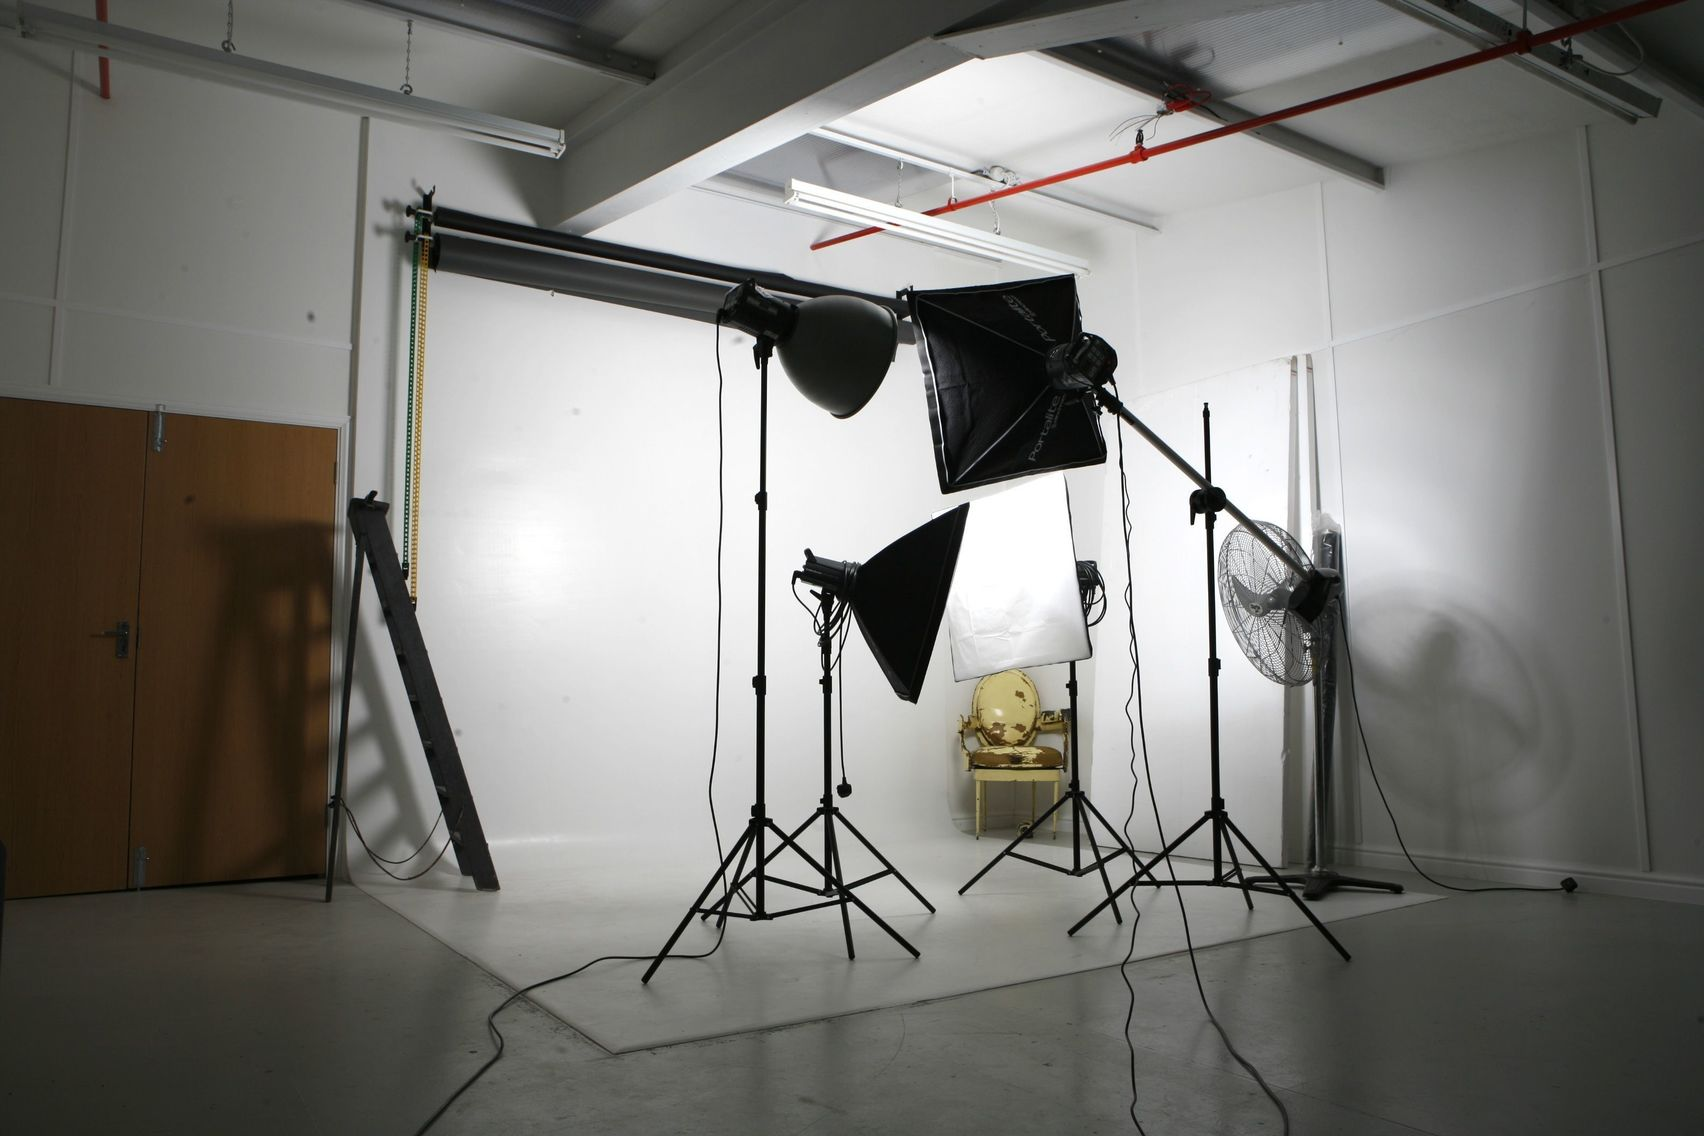 Photographic Studio, SN Studio